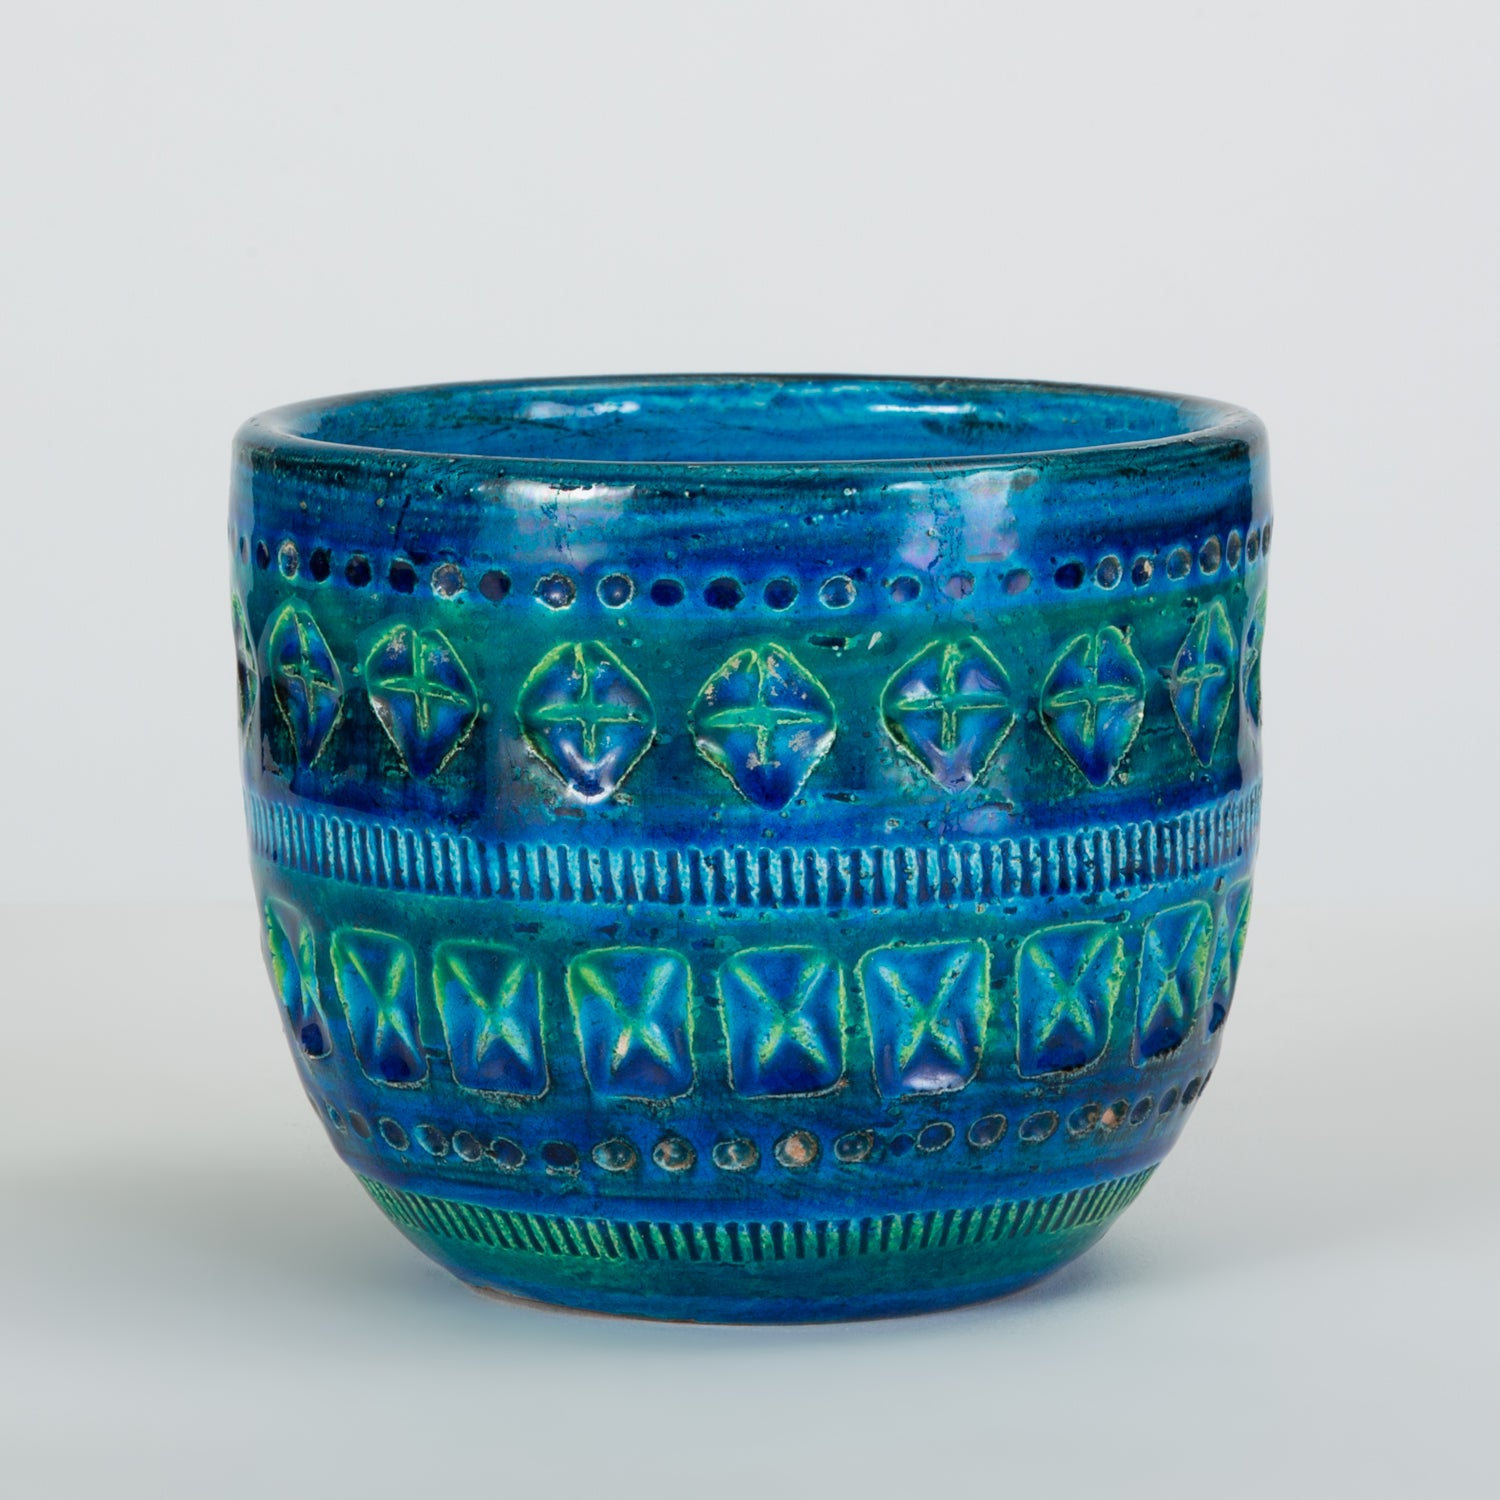 "Small ""Rimini Blu"" Bowl or Vase by Aldo Londi for Bitossi"